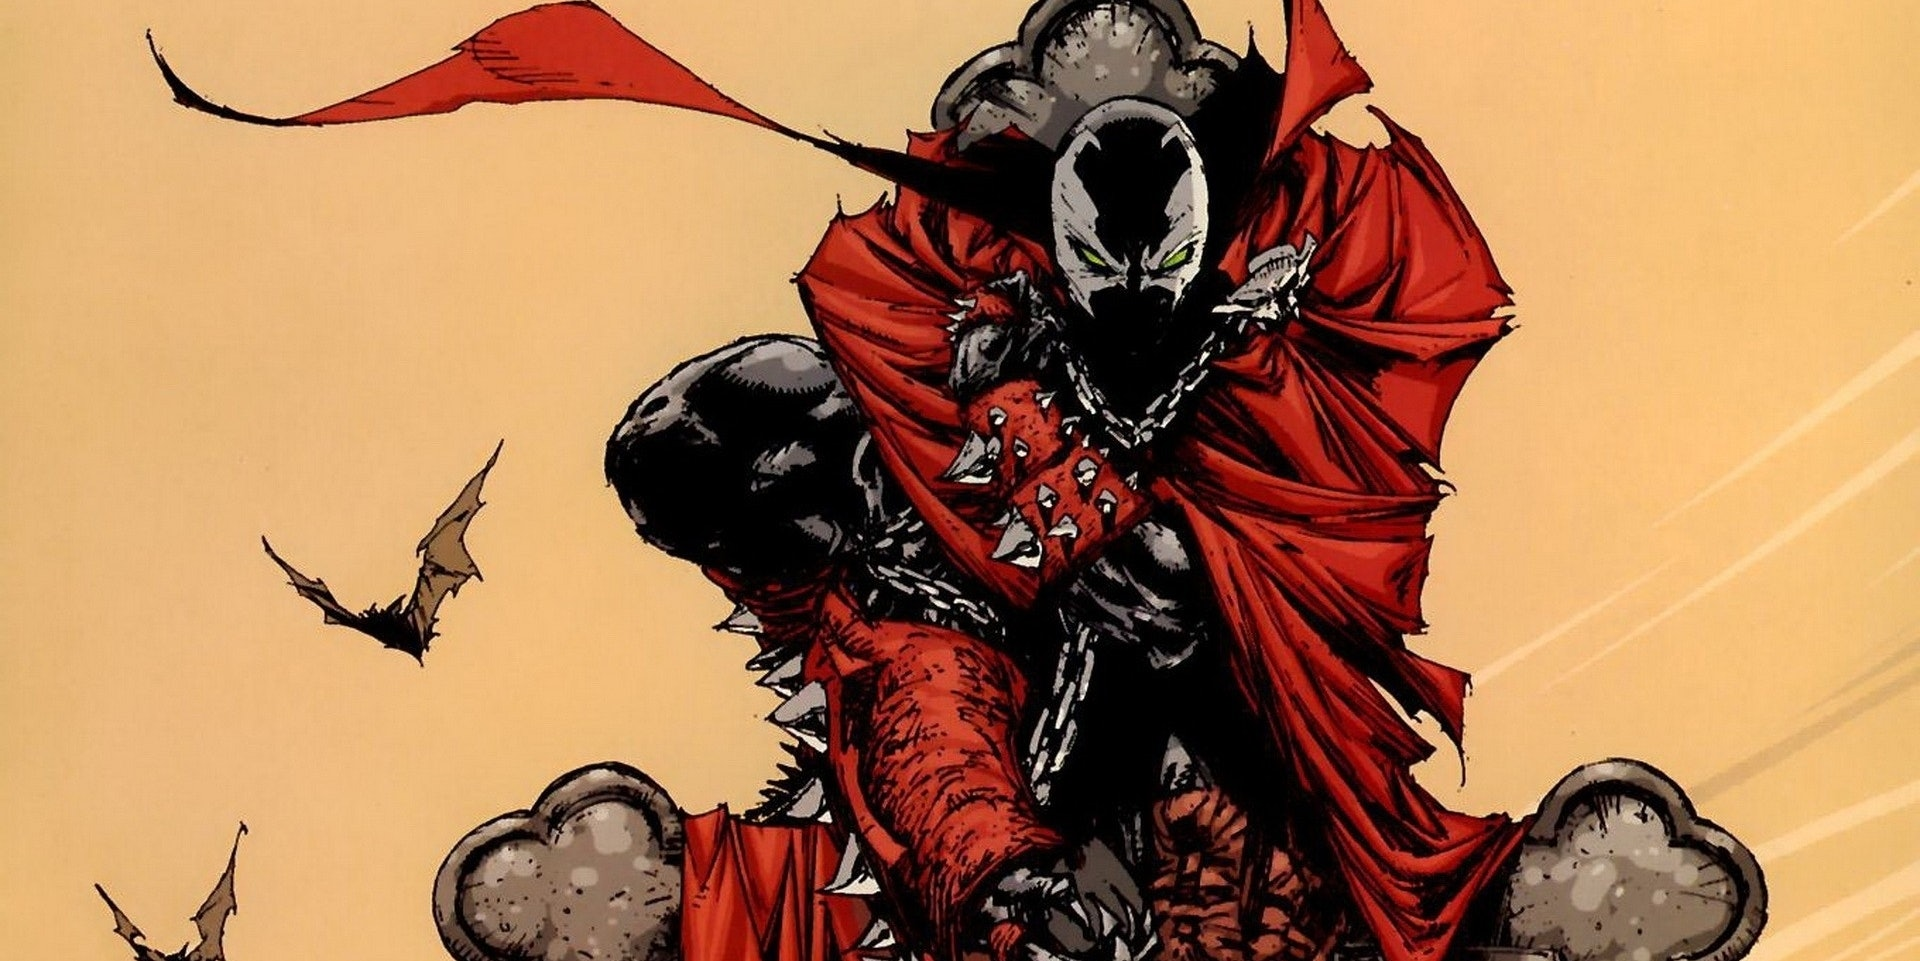 Spawn from Todd McFarlane